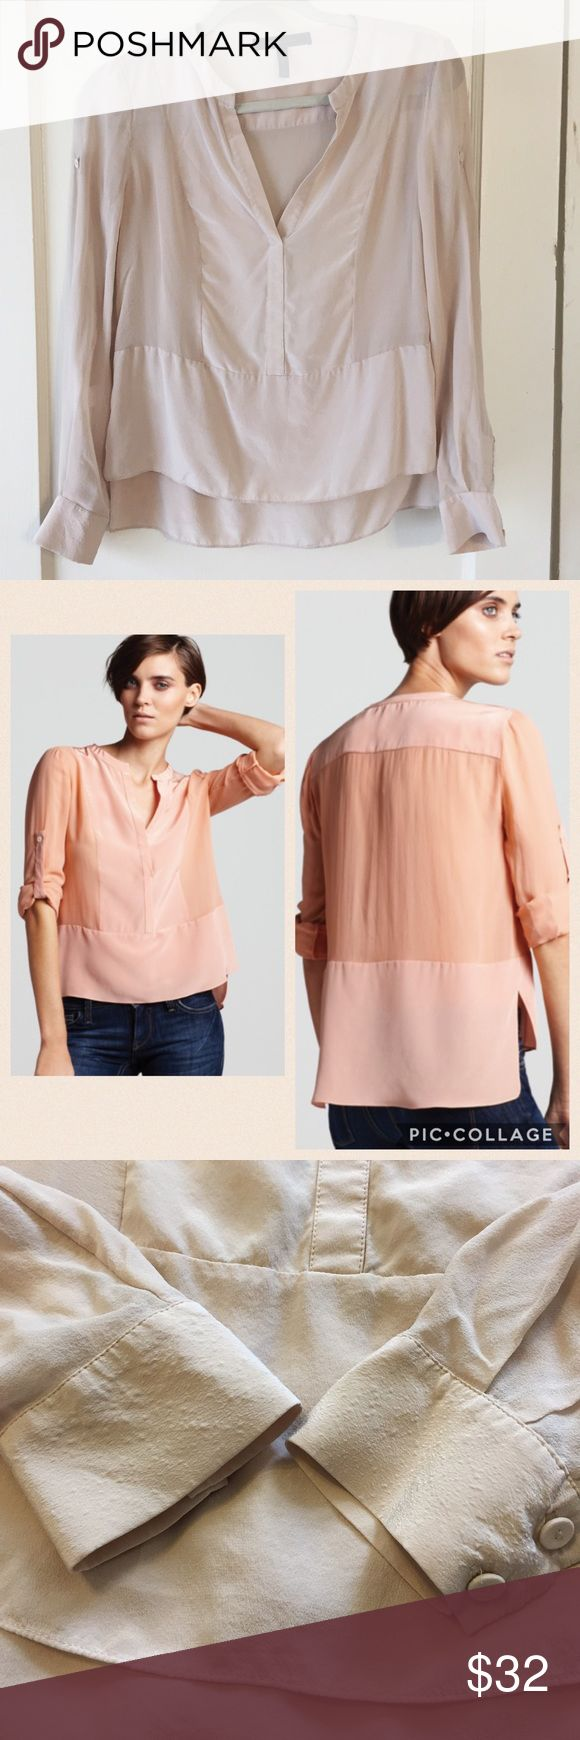 "BCBG MAXAZRIA ""Liberty"" Blouse 100% silk. Color is ""bare"" - beautiful nude color (please note that model is wearing pink to showcase fit only.) Top is in excellent condition - there are some small bubbles on wrist cuffs (see pic), not sure if they were there when bought or not but do not effect wearability. BCBGMaxAzria Tops Blouses"